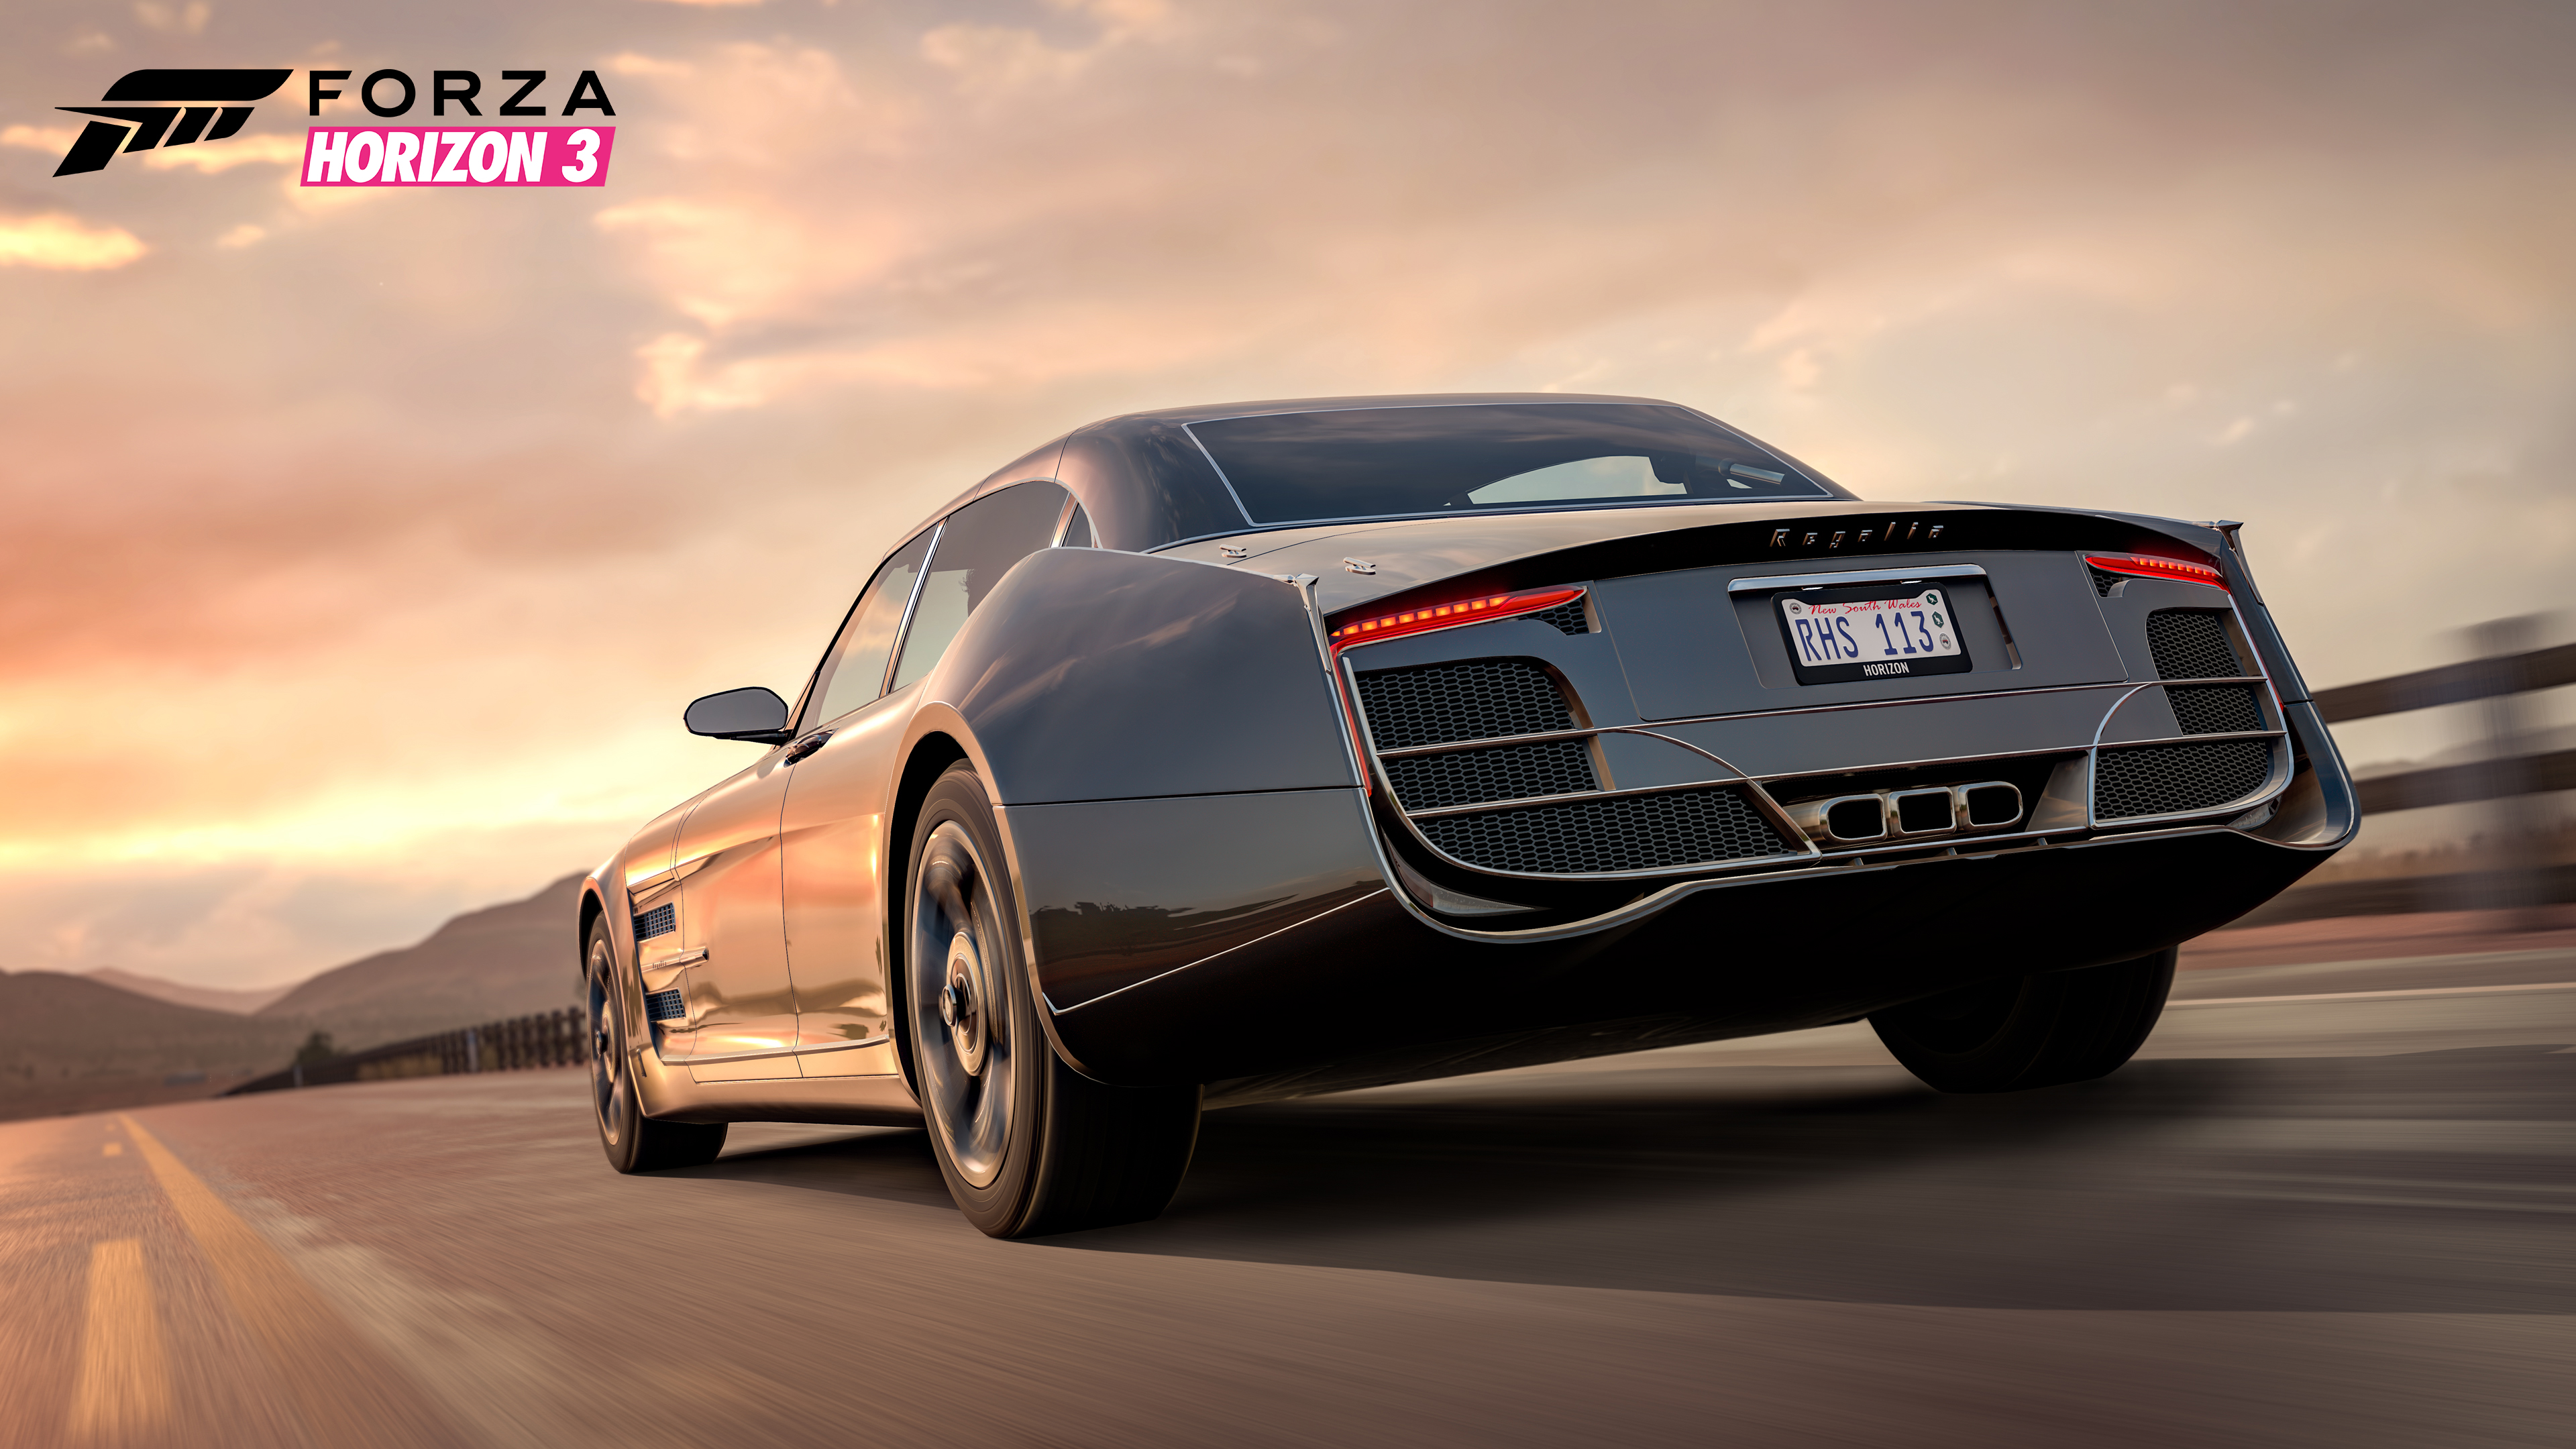 The Regalia Will Be Made Available To Everyone Who Has Played Forza Horizon 3 On Xbox One S Or Windows 10 PCs And FINAL FANTASY XV